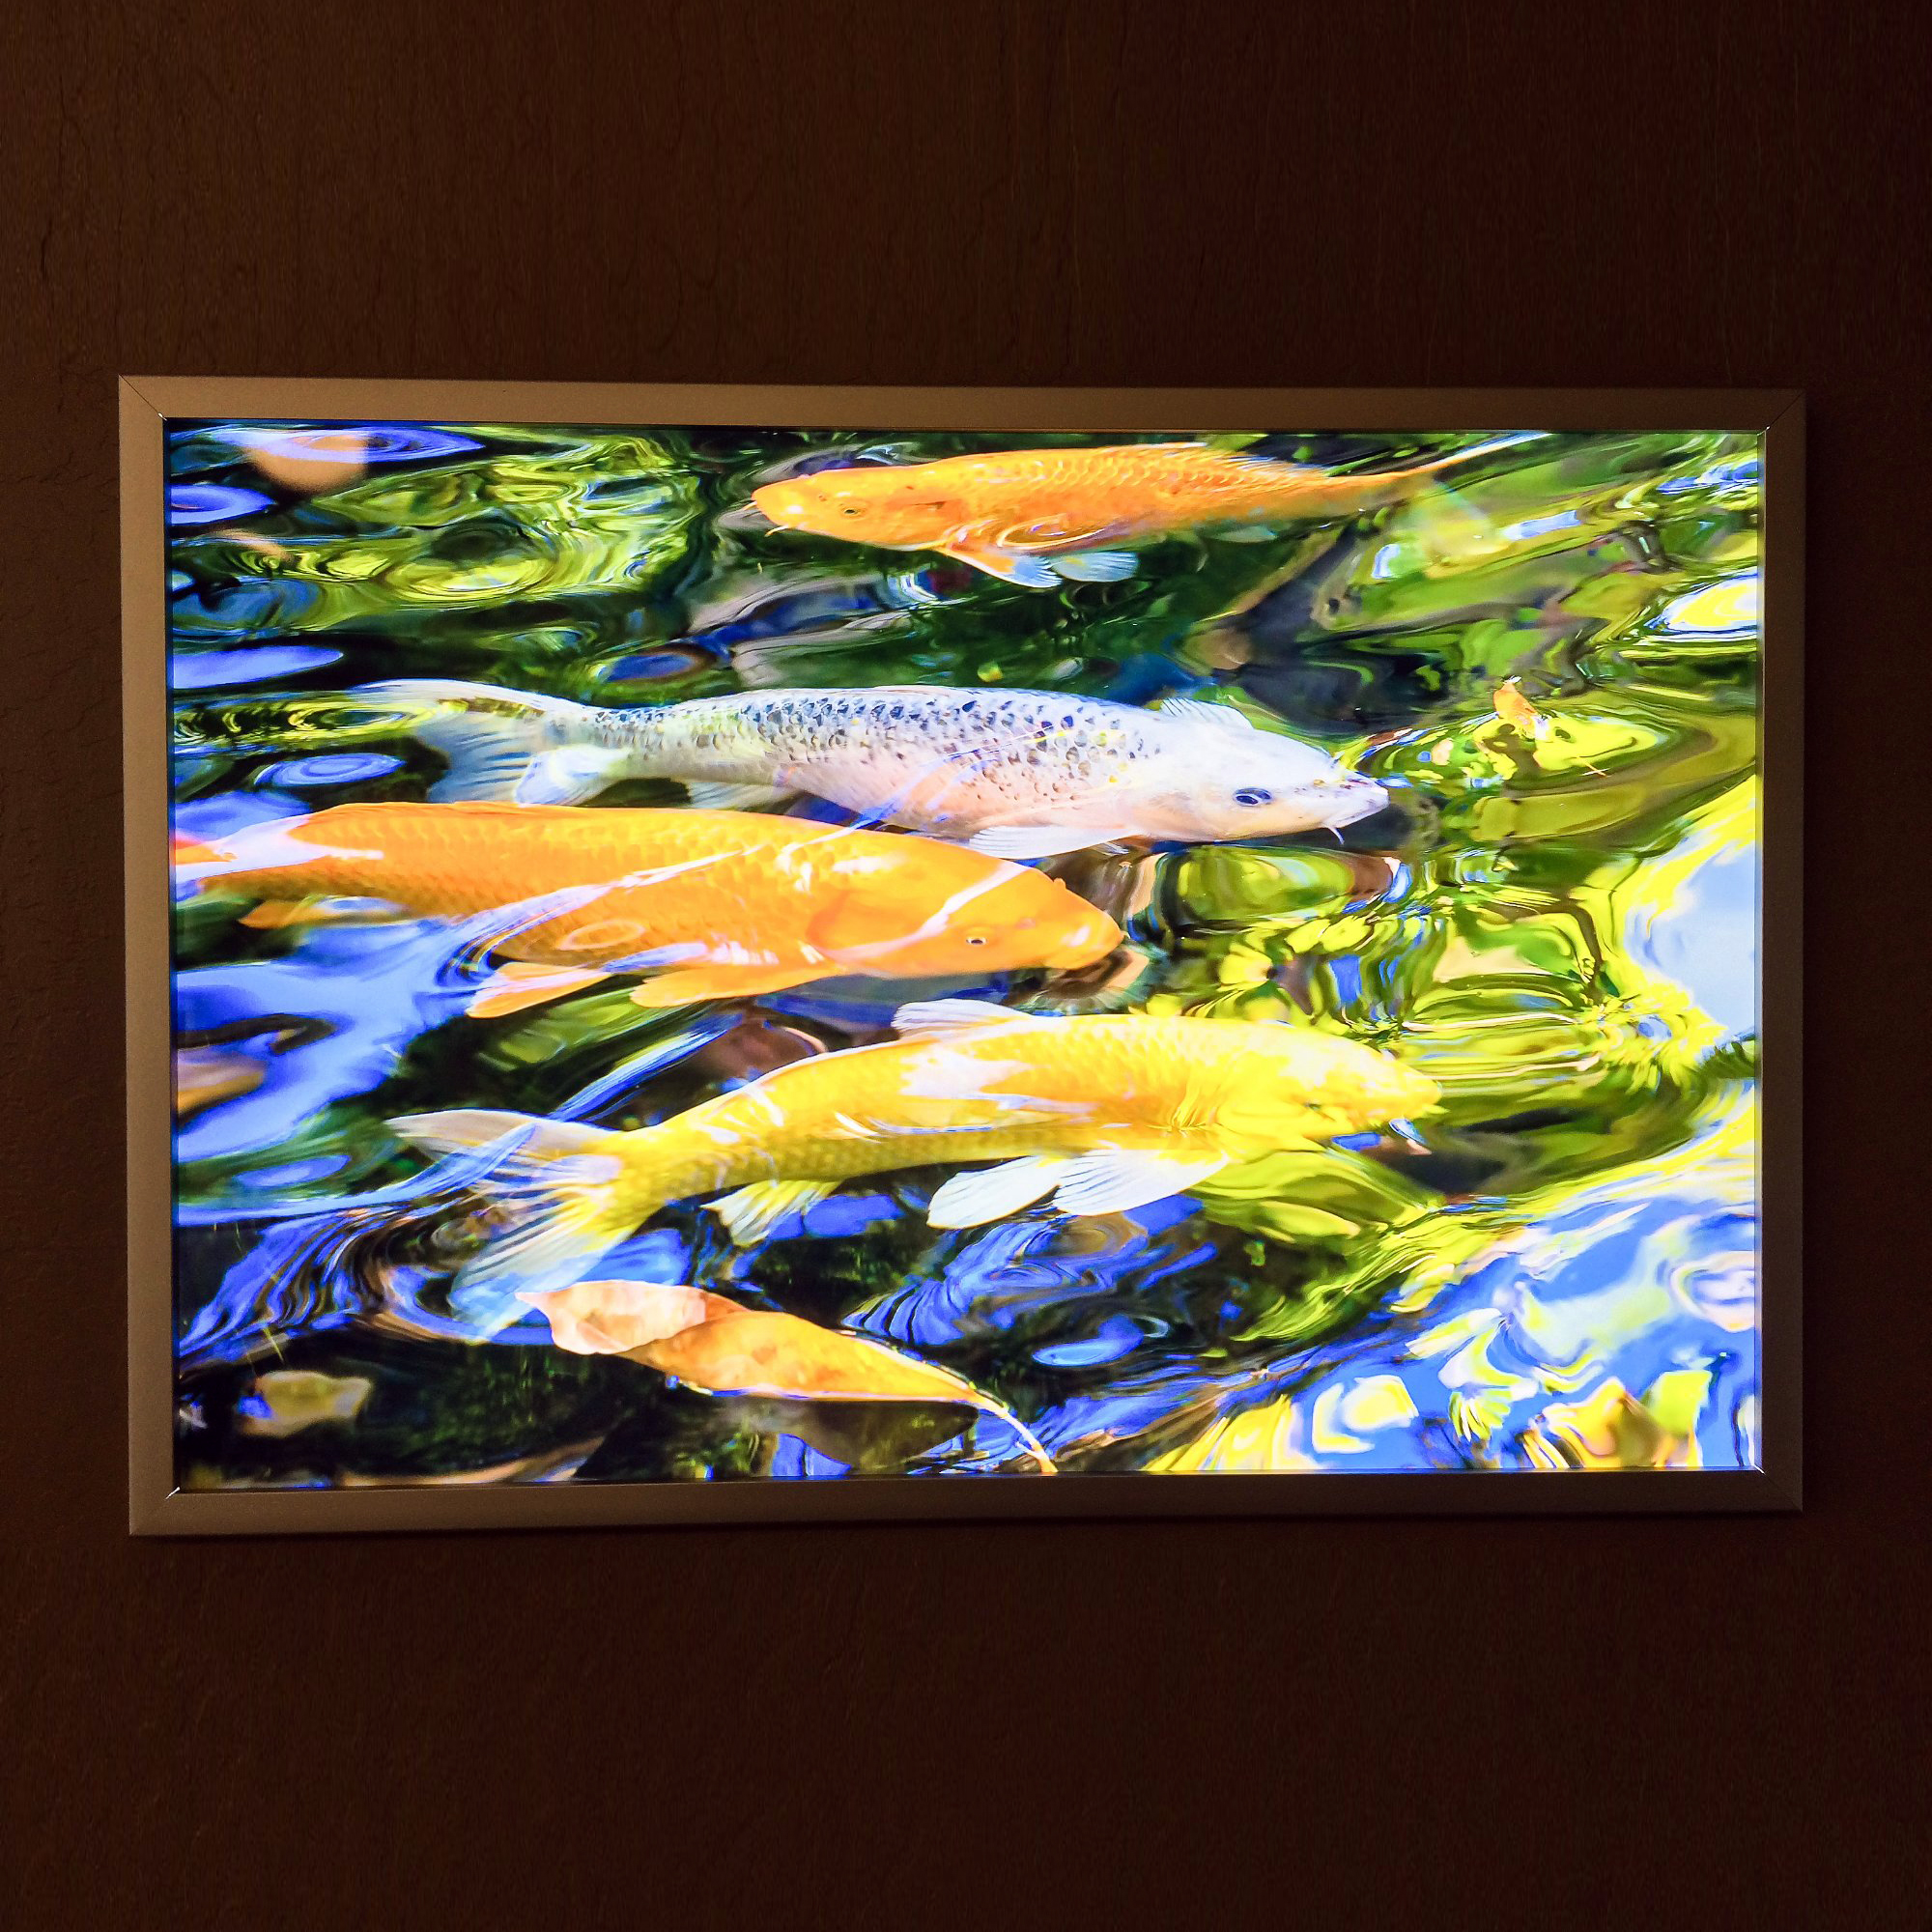 ArtisanHD Duratrans Light Box Backlit Prints Koi Fish